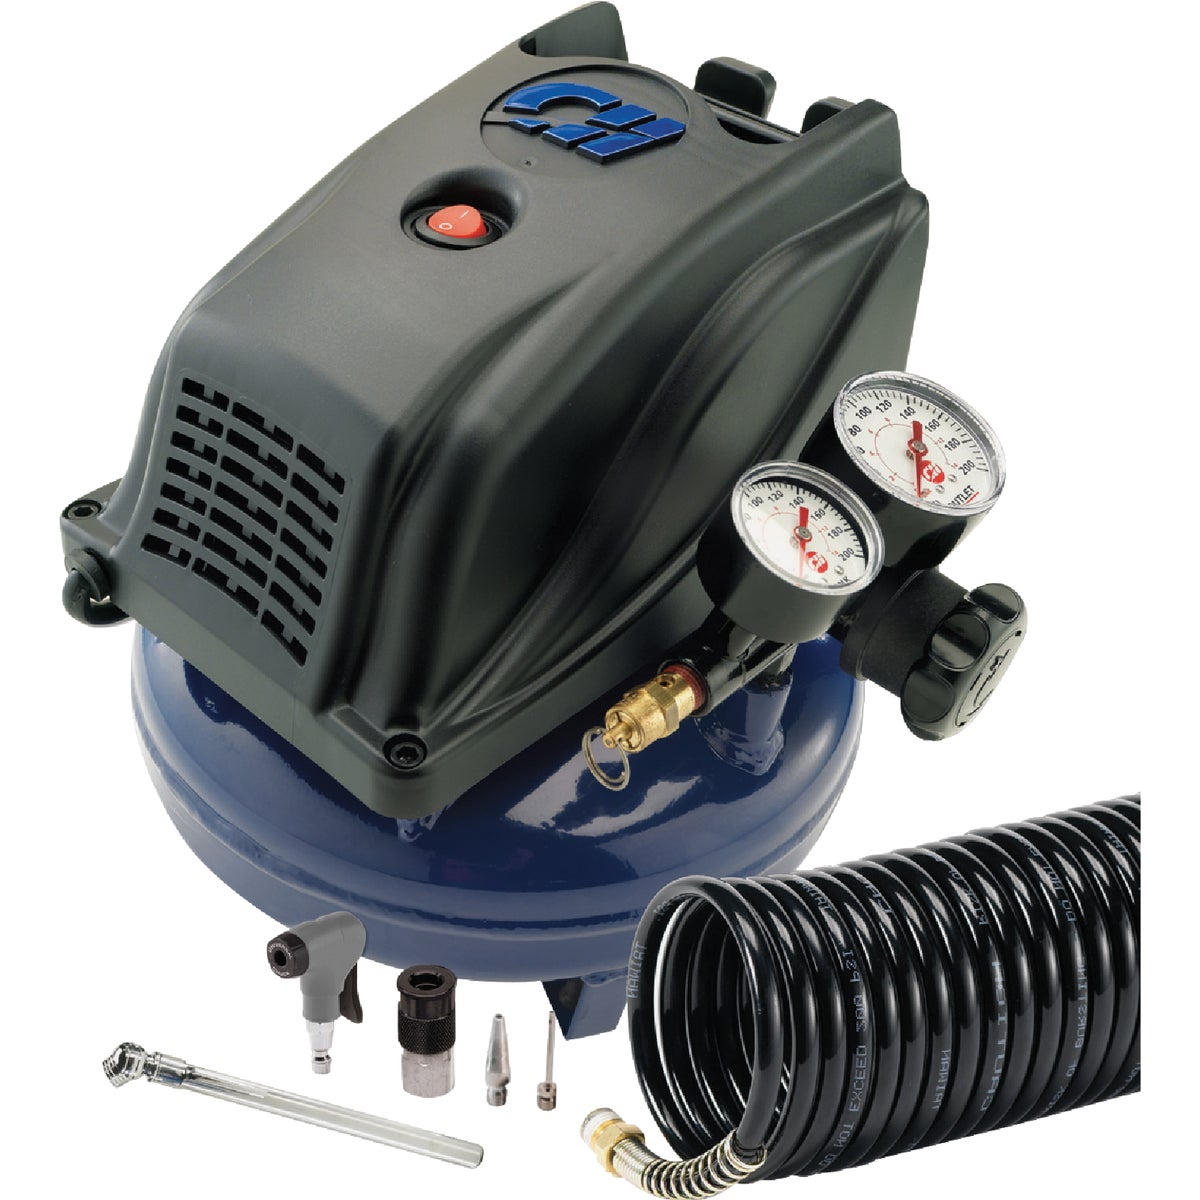 Air Compressors and Tanks Jugenheimer Ind Supplies - Page 1